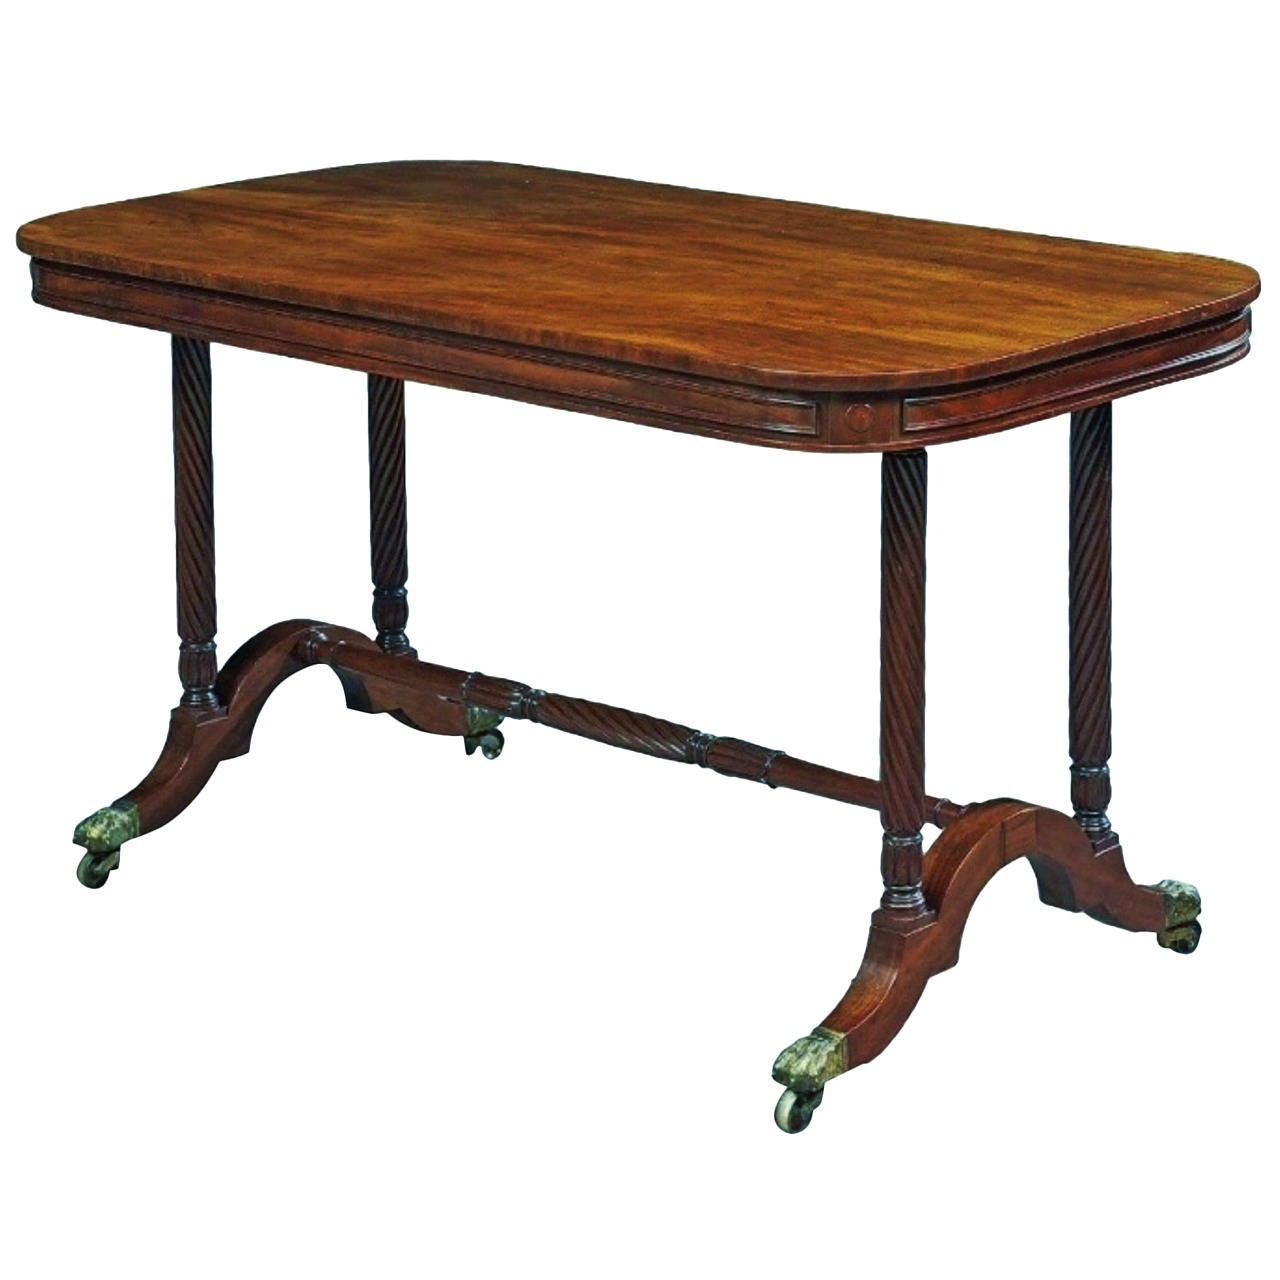 Good Quality Regency Mahogany Centre or Library Table